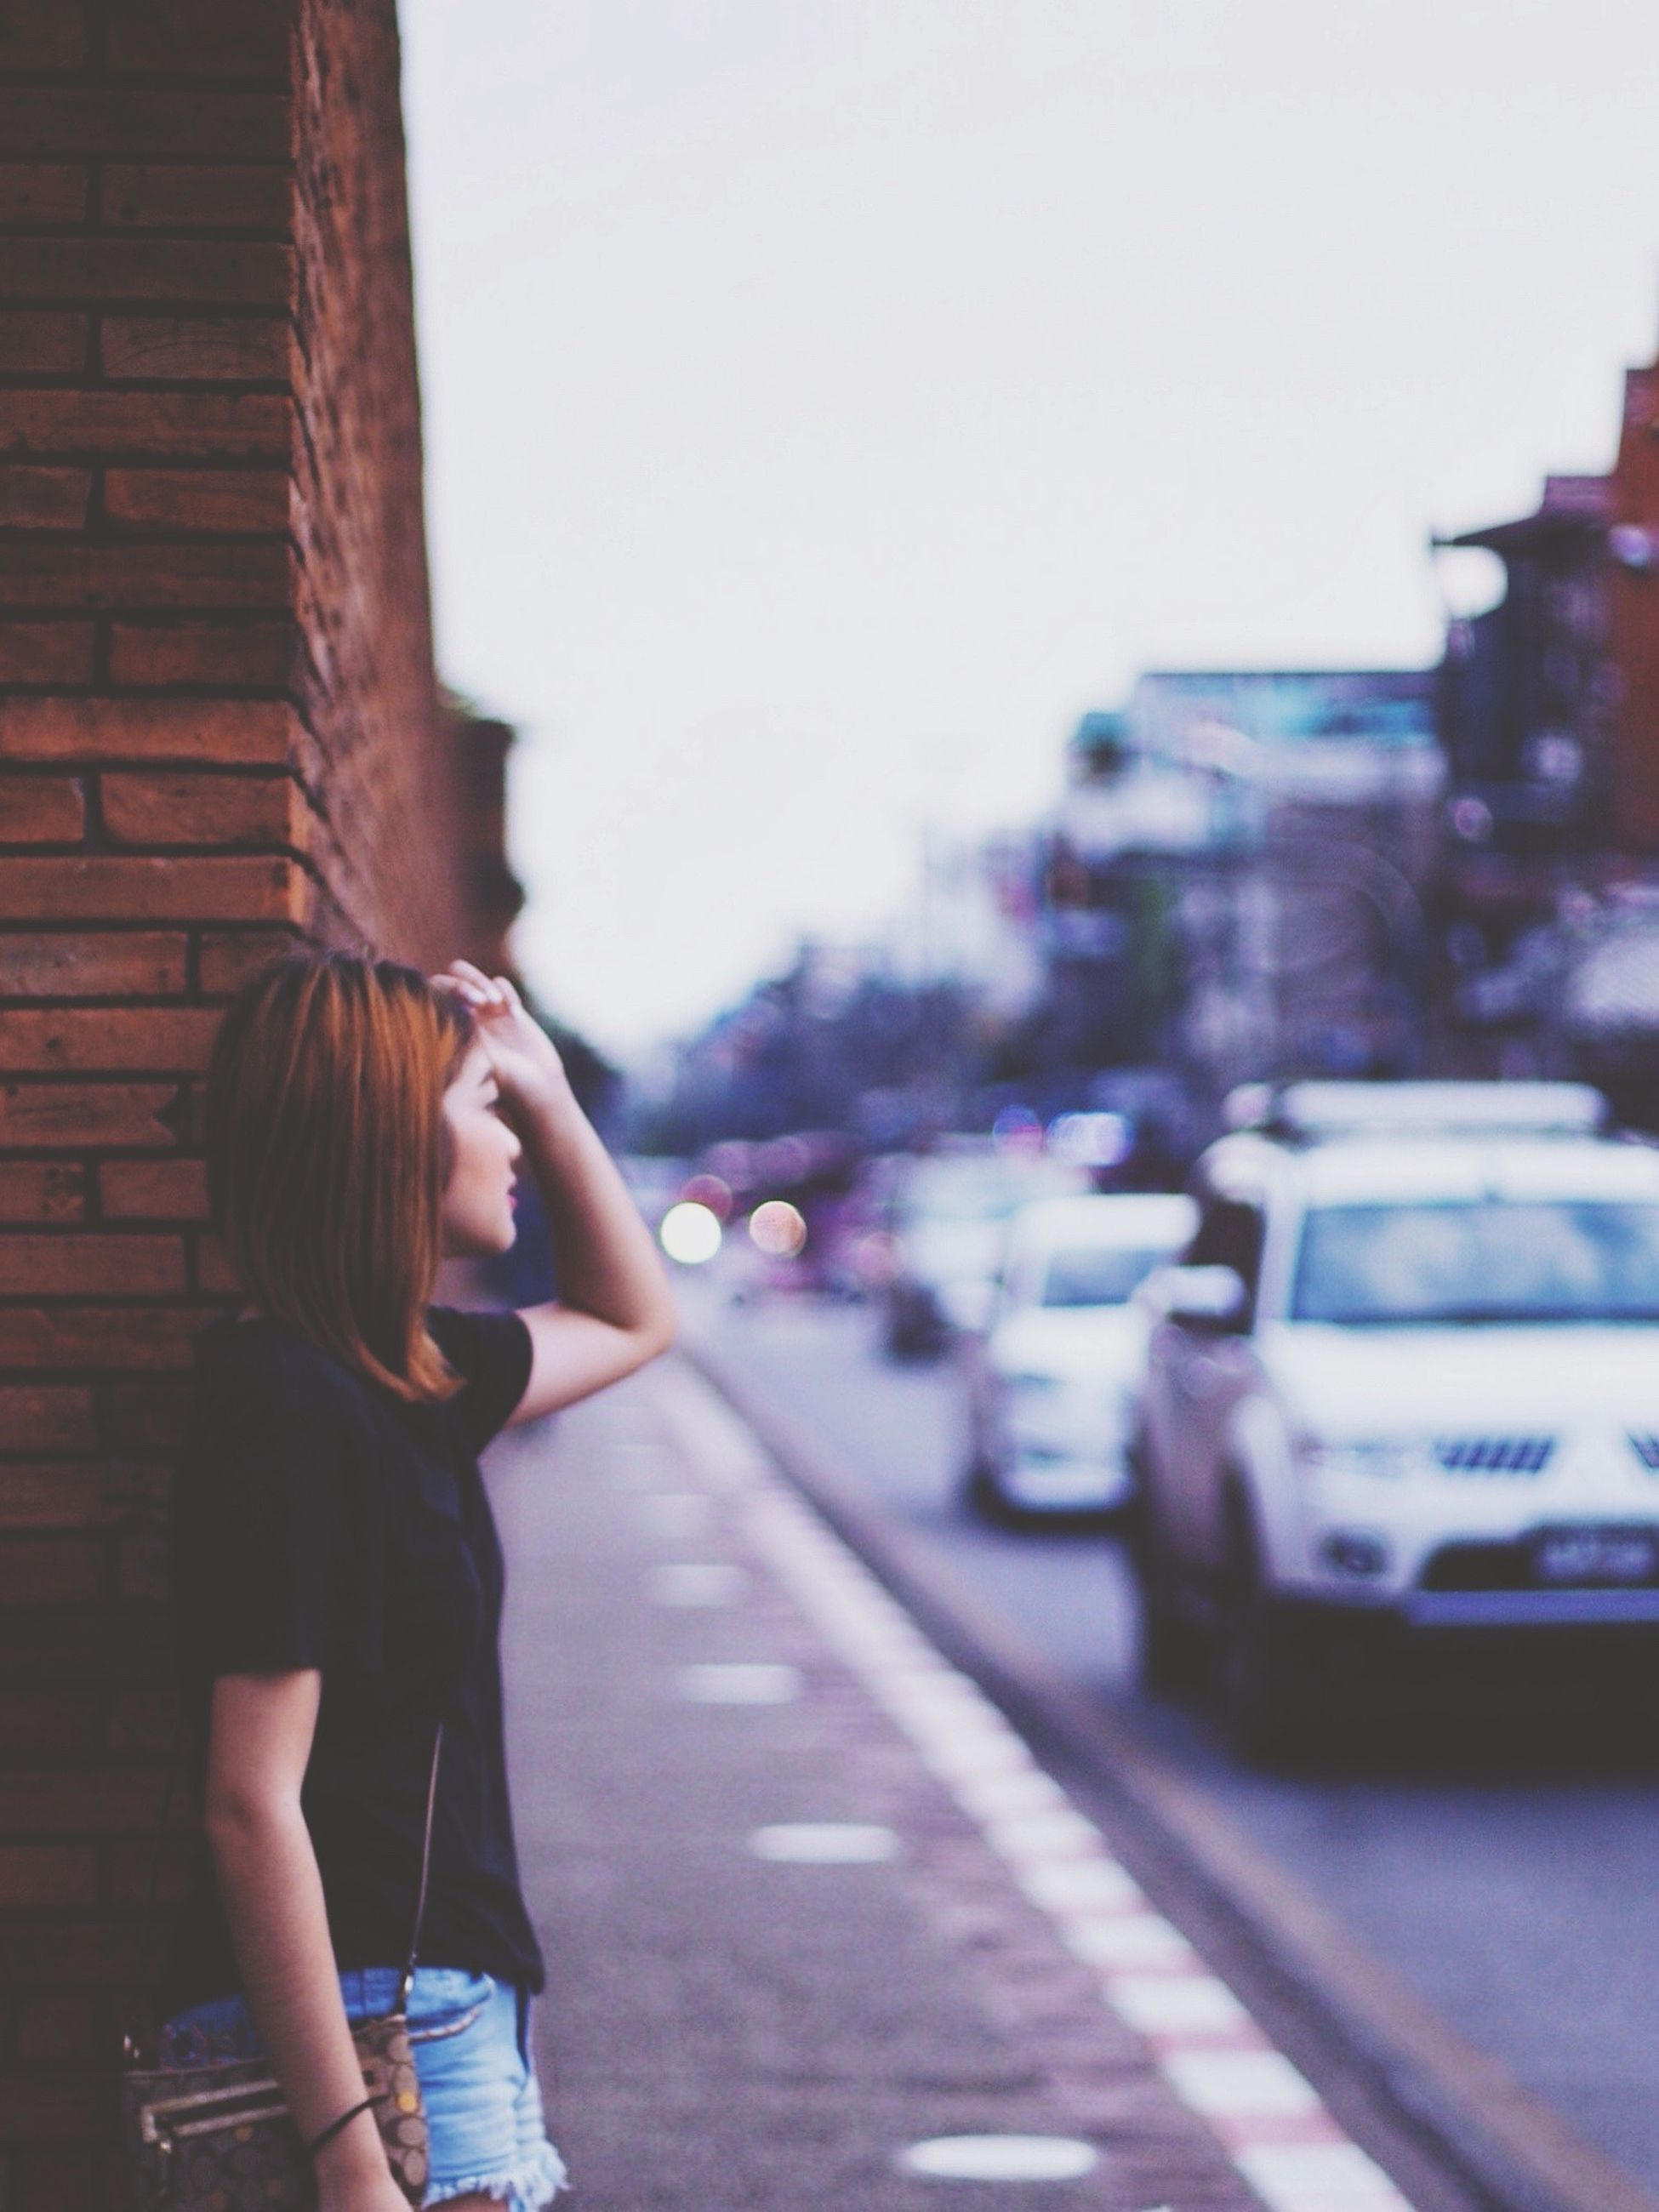 car, street, road, transportation, young women, land vehicle, city, long hair, young adult, city life, mode of transport, casual clothing, focus on foreground, medium-length hair, day, holding, person, outdoors